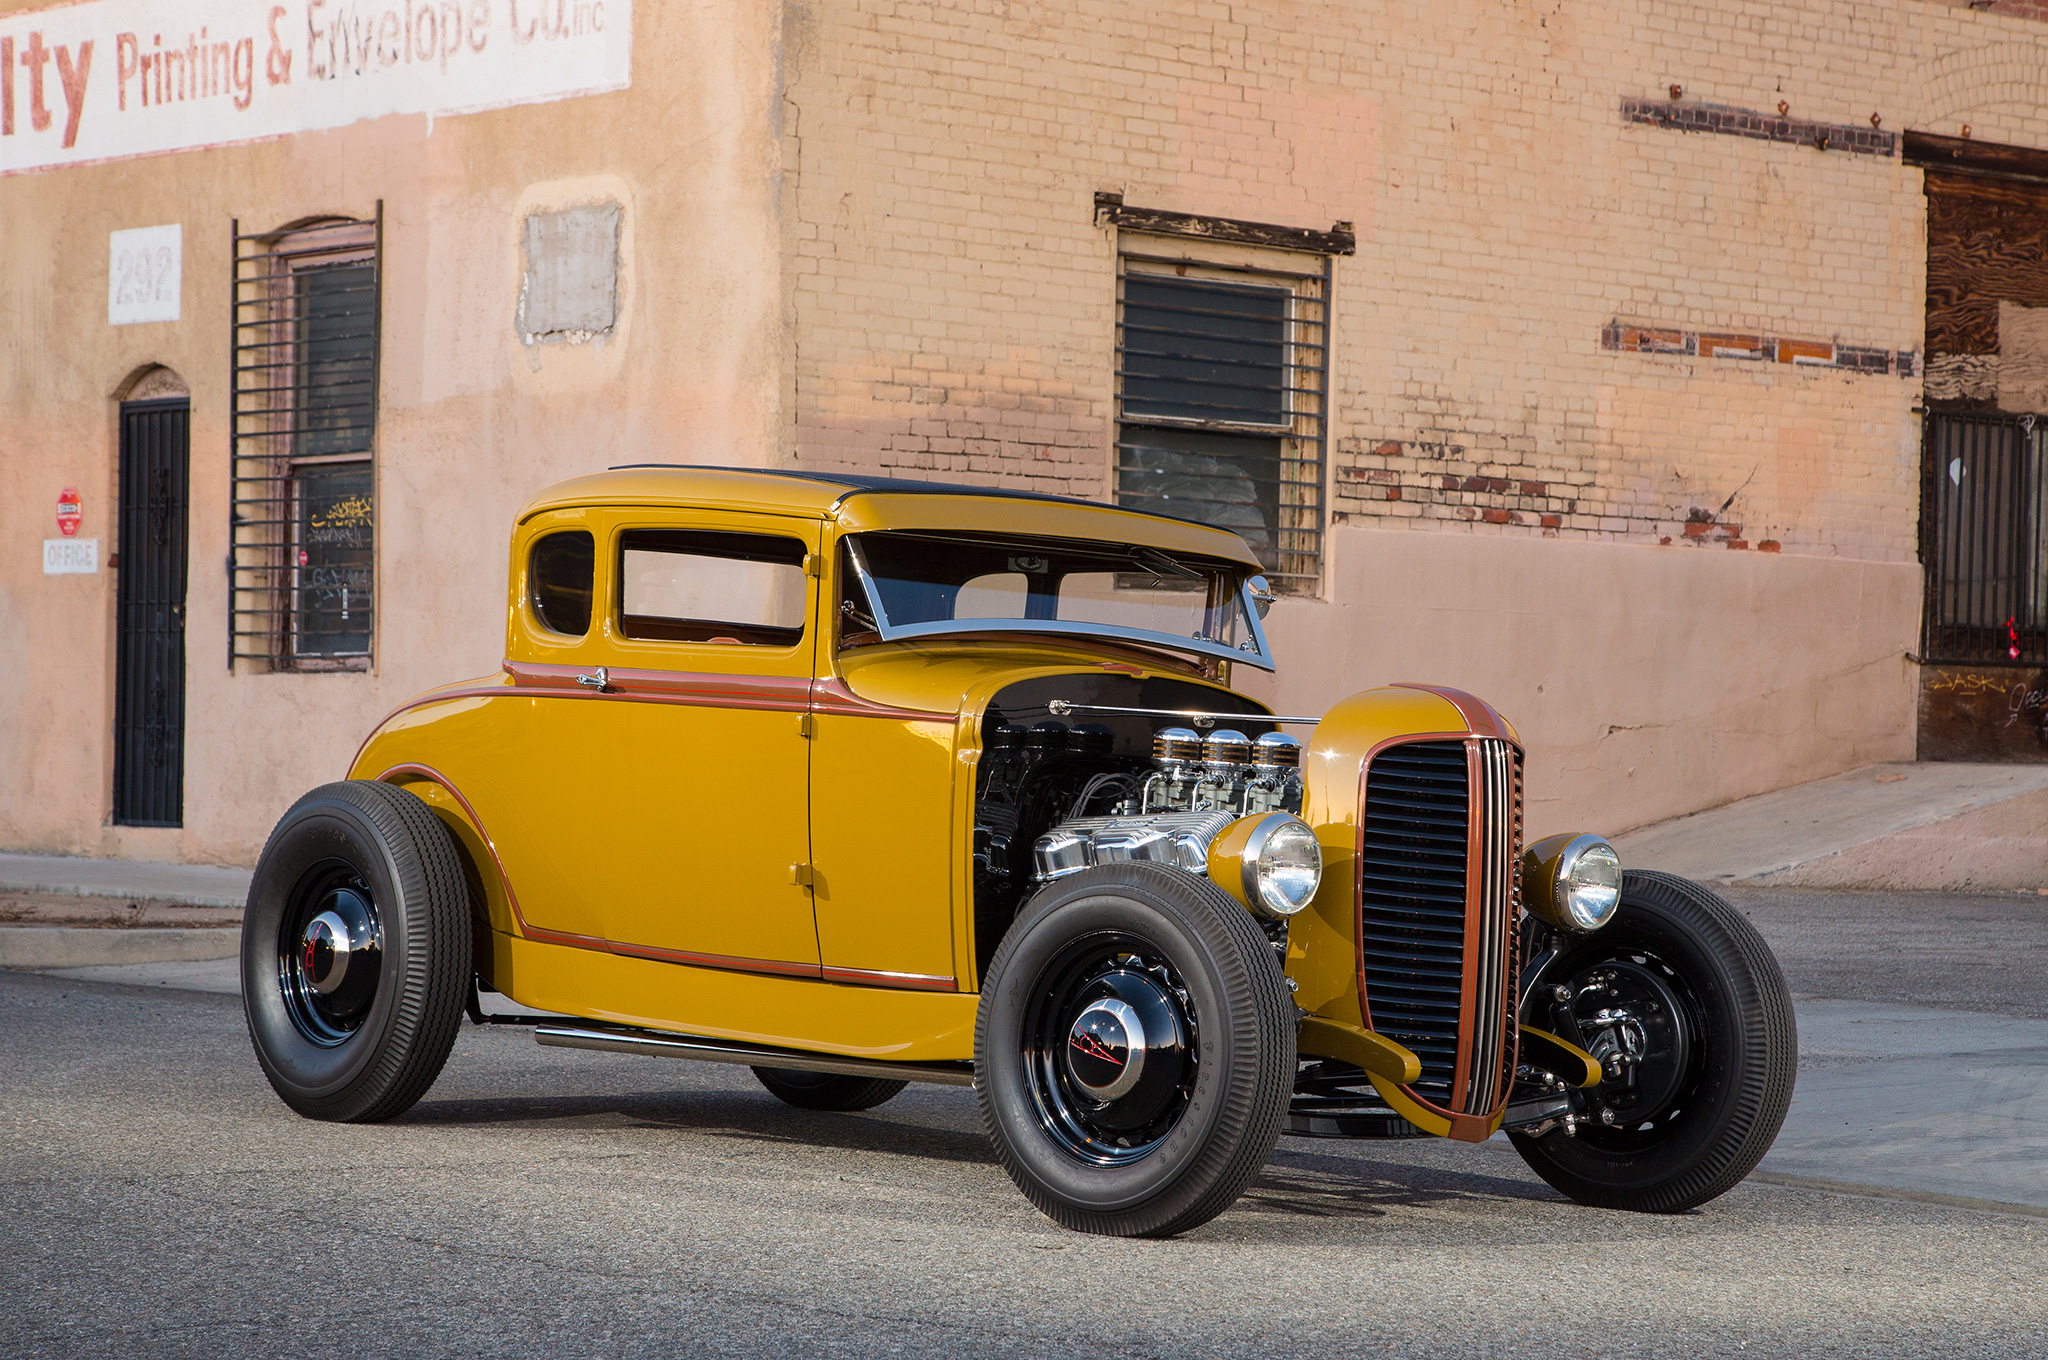 More than a dozen years in the making, Colby Martin's '31 Model A five-window is a detail-rich rolling testament to the longtime automotive passion shared by Colby and his father, Al. It also speaks to the generosity of Southern California's rodding community, as several of Colby and Al's buddies gladly donated parts, time, and expertise to make their vision a reality.